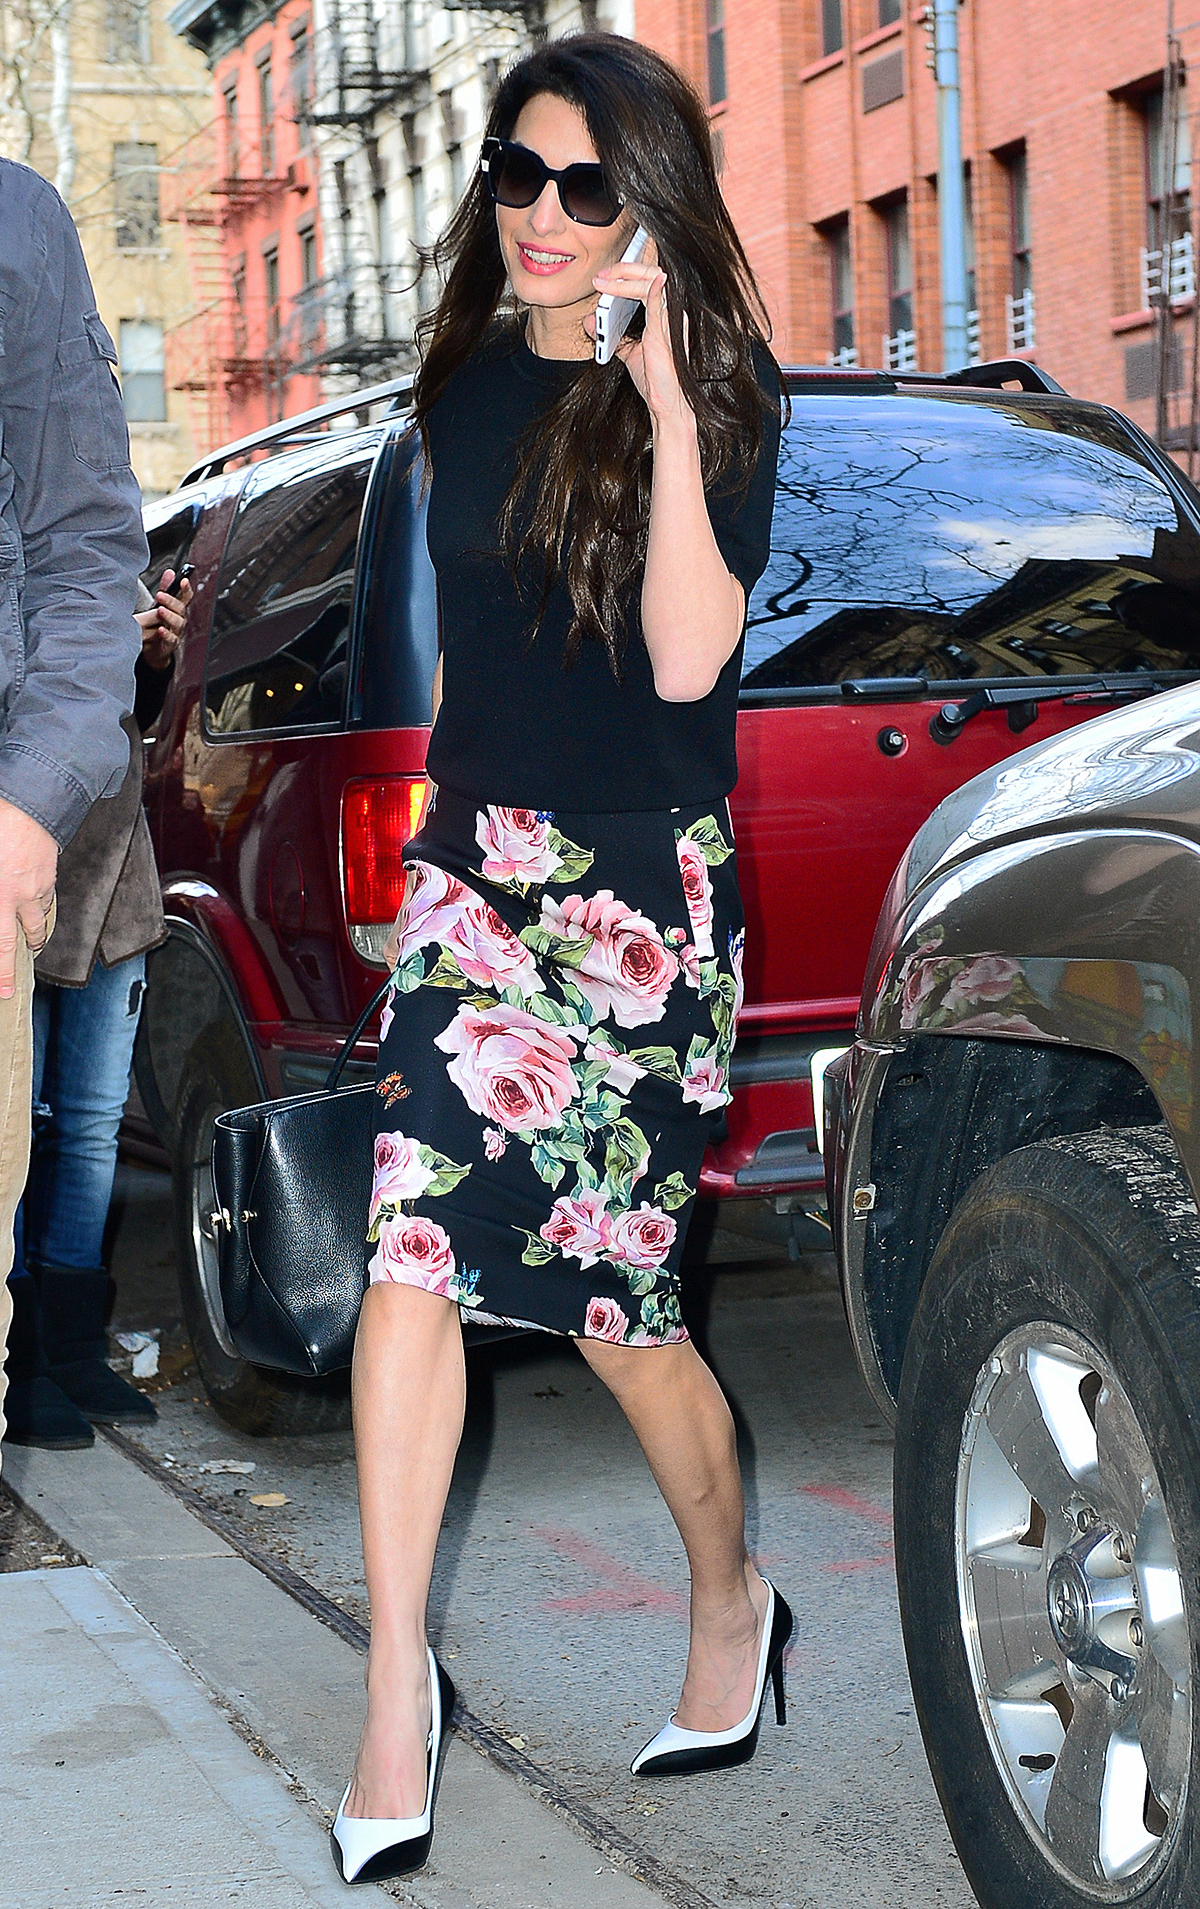 Amal Clooney is all smiles as she steps out wearing a floral skirt after teaching at Columbia University in NYC